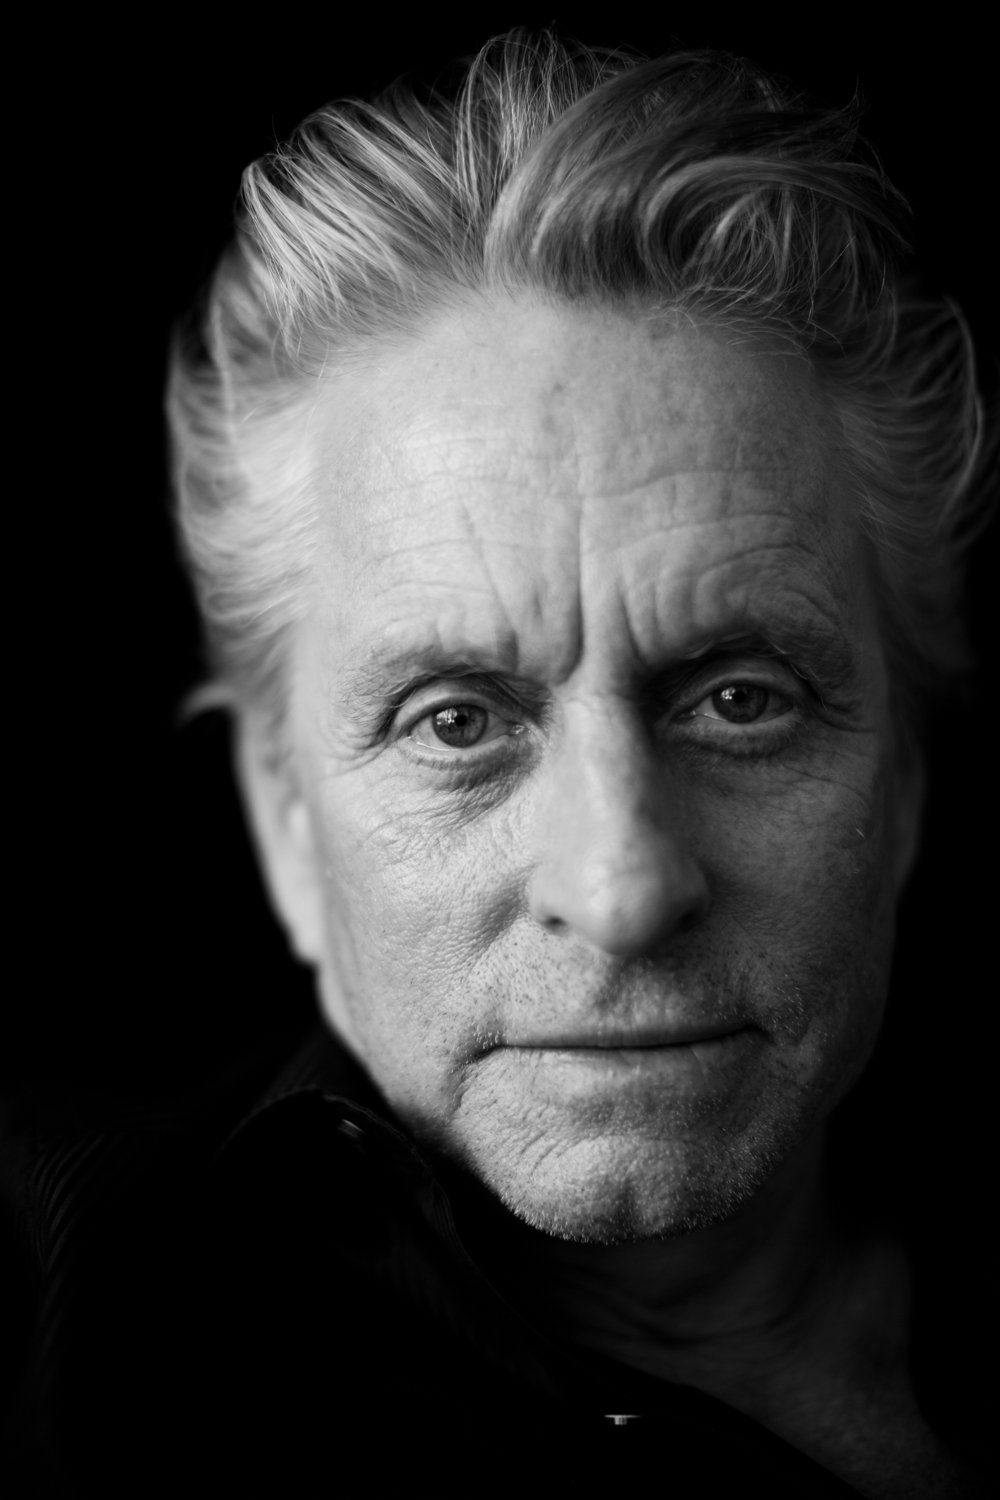 johnmidgley-michaeldouglas-15.jpg